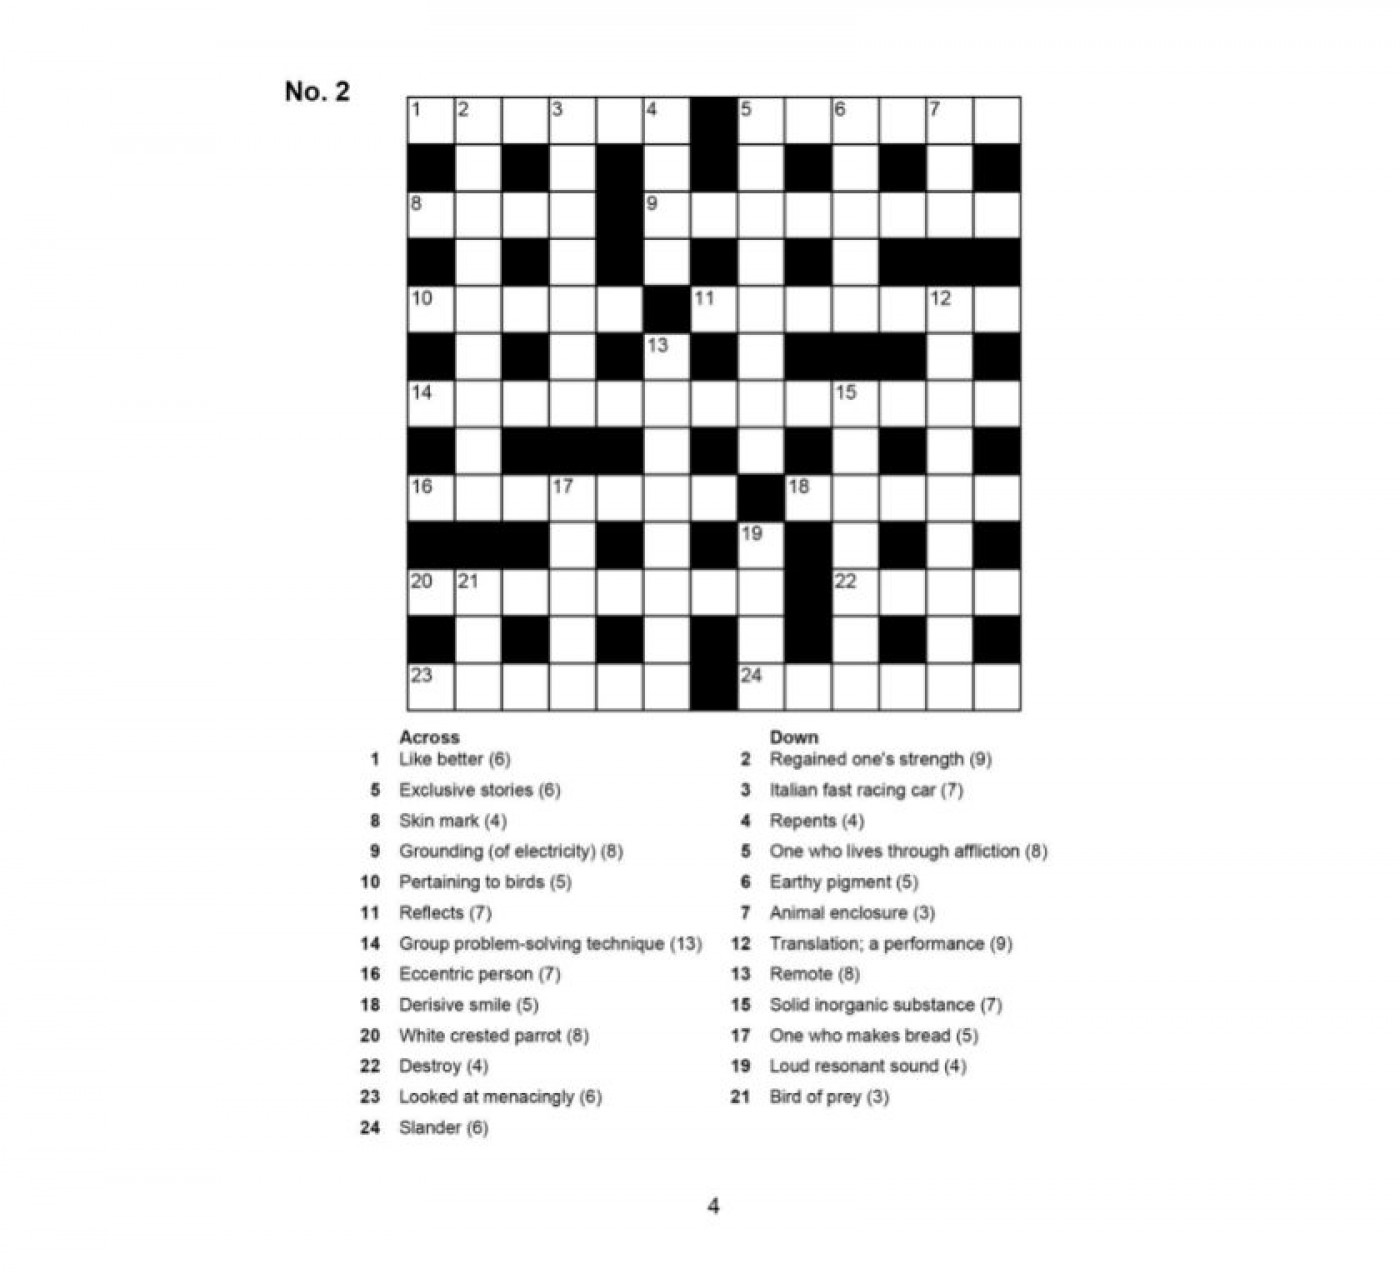 000 Archaicawful Remote Crossword Clue Photo  11 Letter Settlement 81400